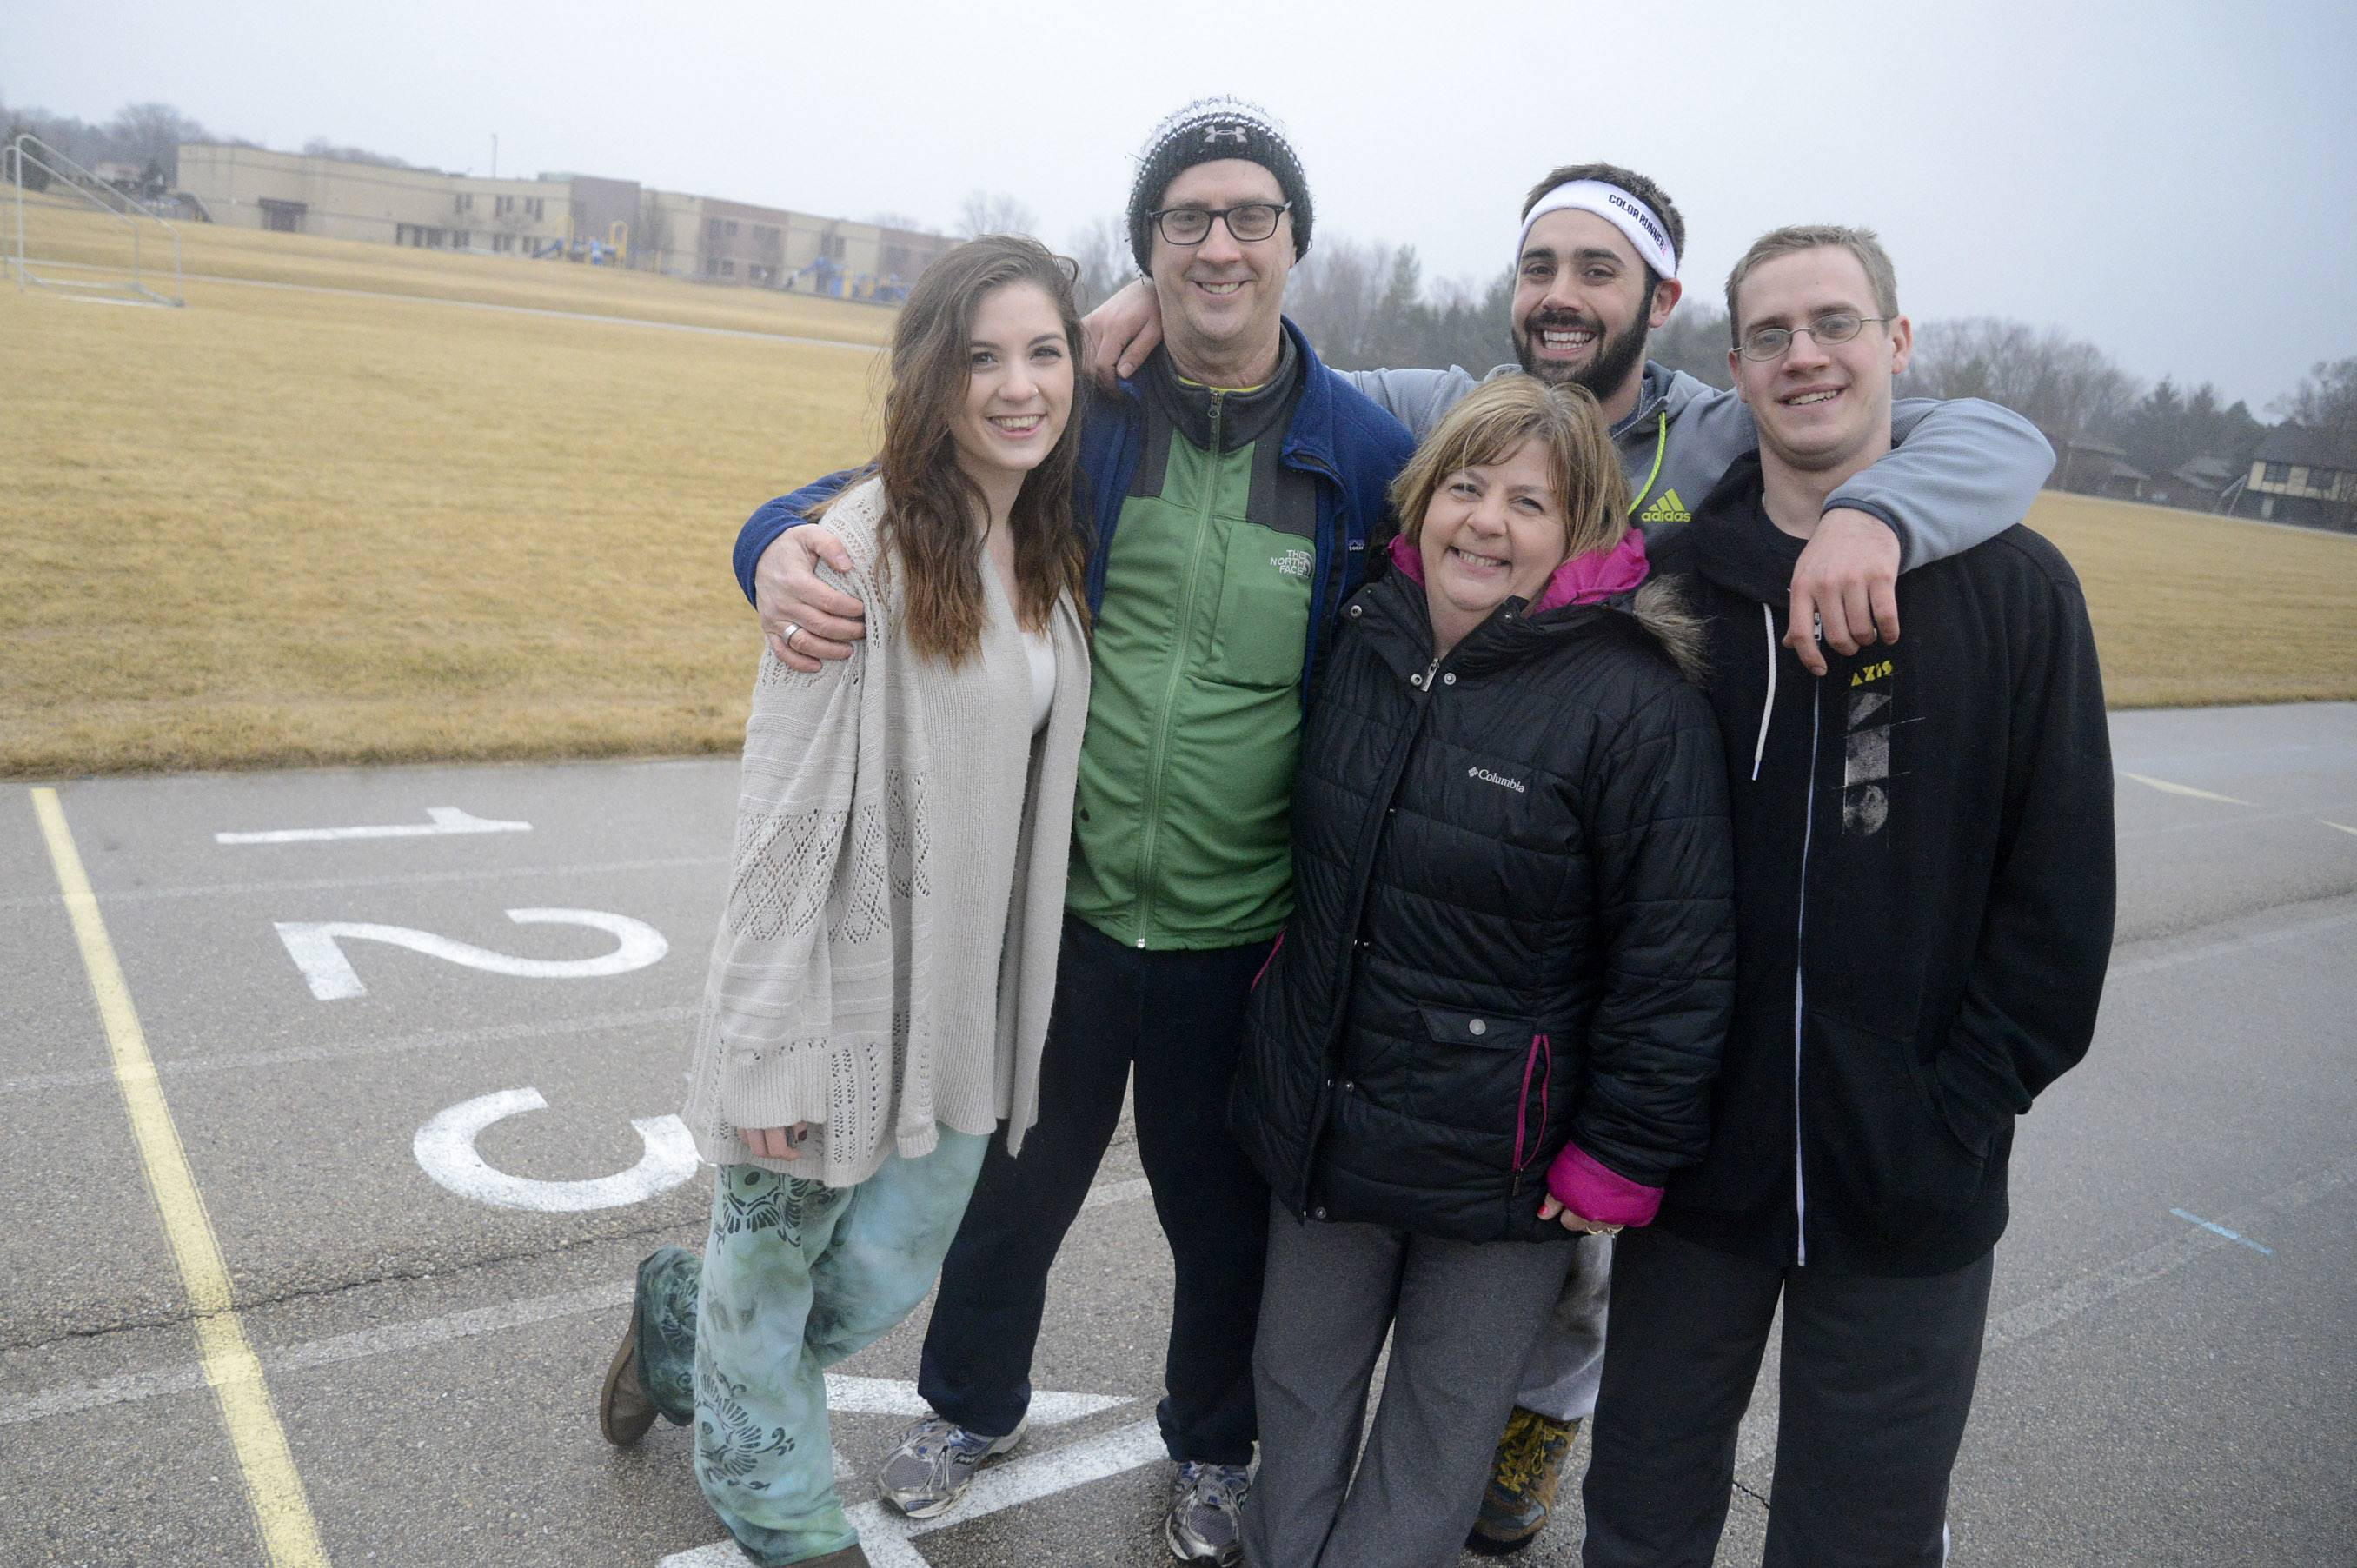 With his wife and kids on board, Fittest Loser Tim Lange of Algonquin is confident he'll succeed. From left, daughter Julie, 18, Tim, wife Kathy, and sons Tony, 24, and Mike, 26.